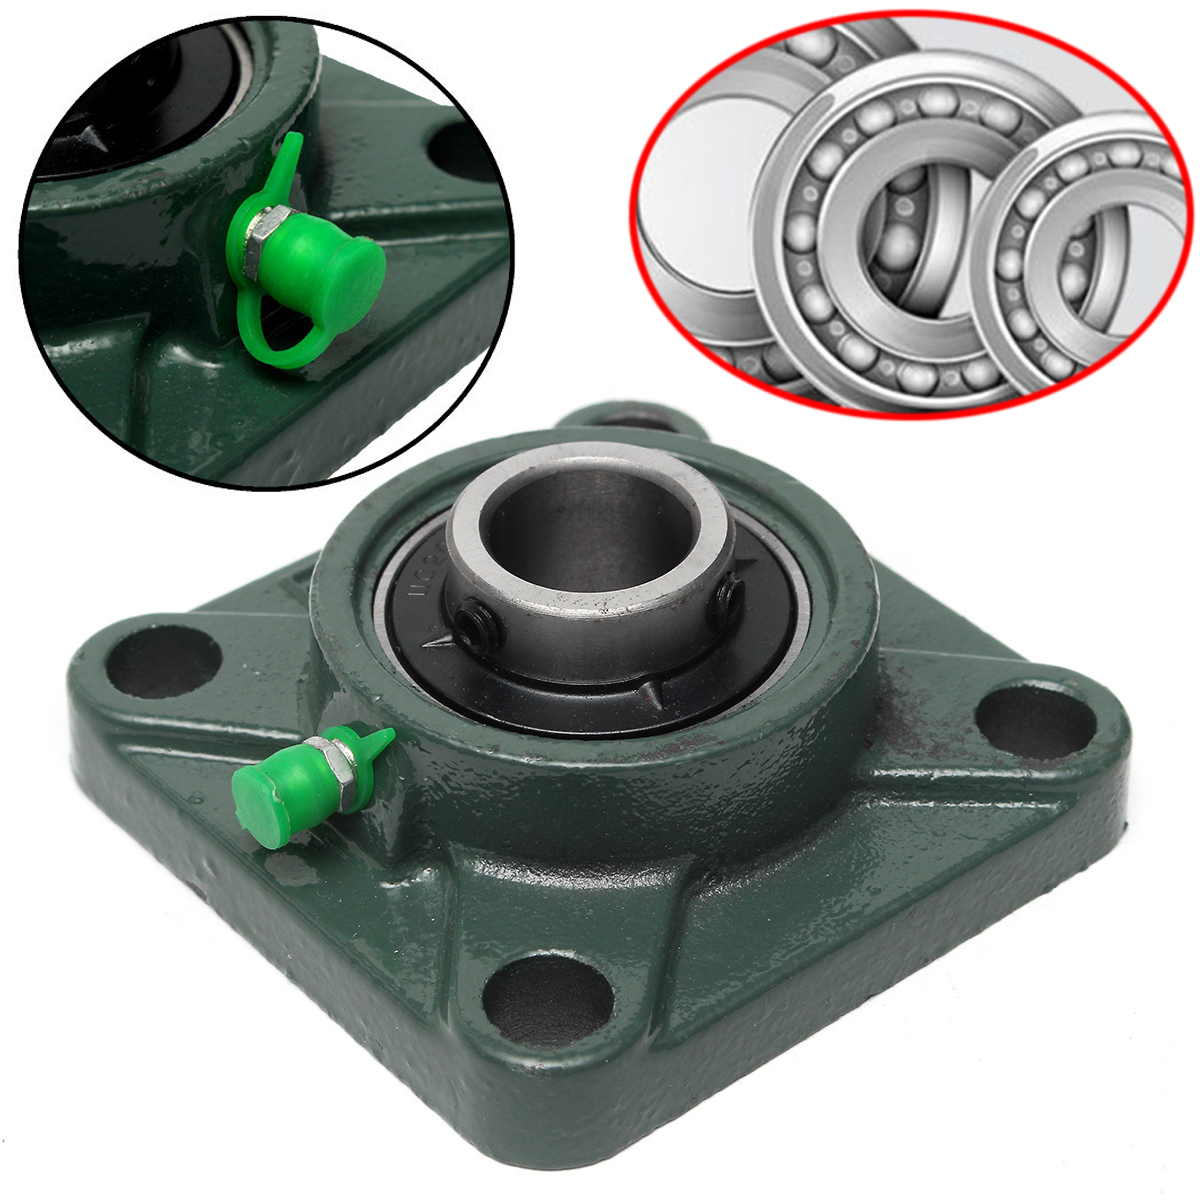 New UCF204 Mounted Bearings 20mm 4-Bolt Square Flange Pillow Block Bearing Housing Mayitr For CNC Parts lmk50luu lengthening square flange linear bearings 50mm 80mm 192mm